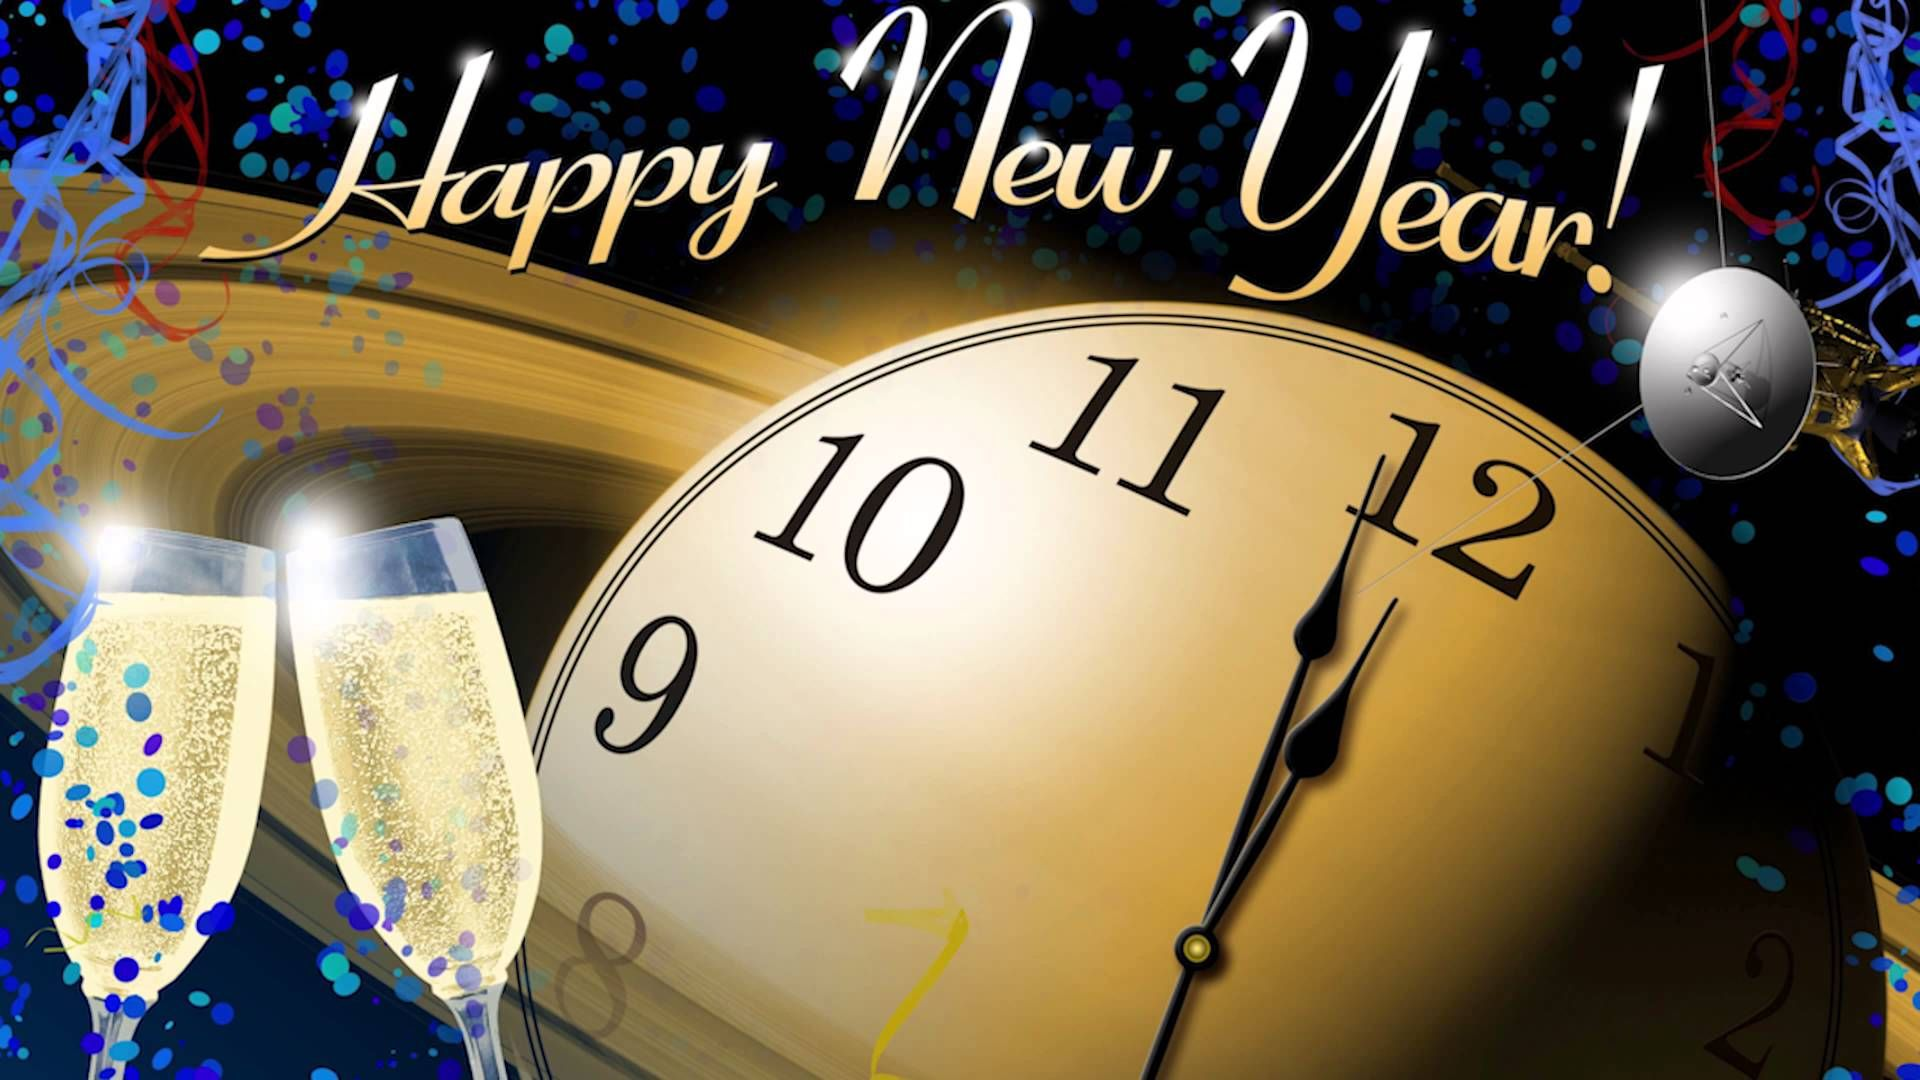 happy new year wishes happy new year images happy new year messages happy new year quotes